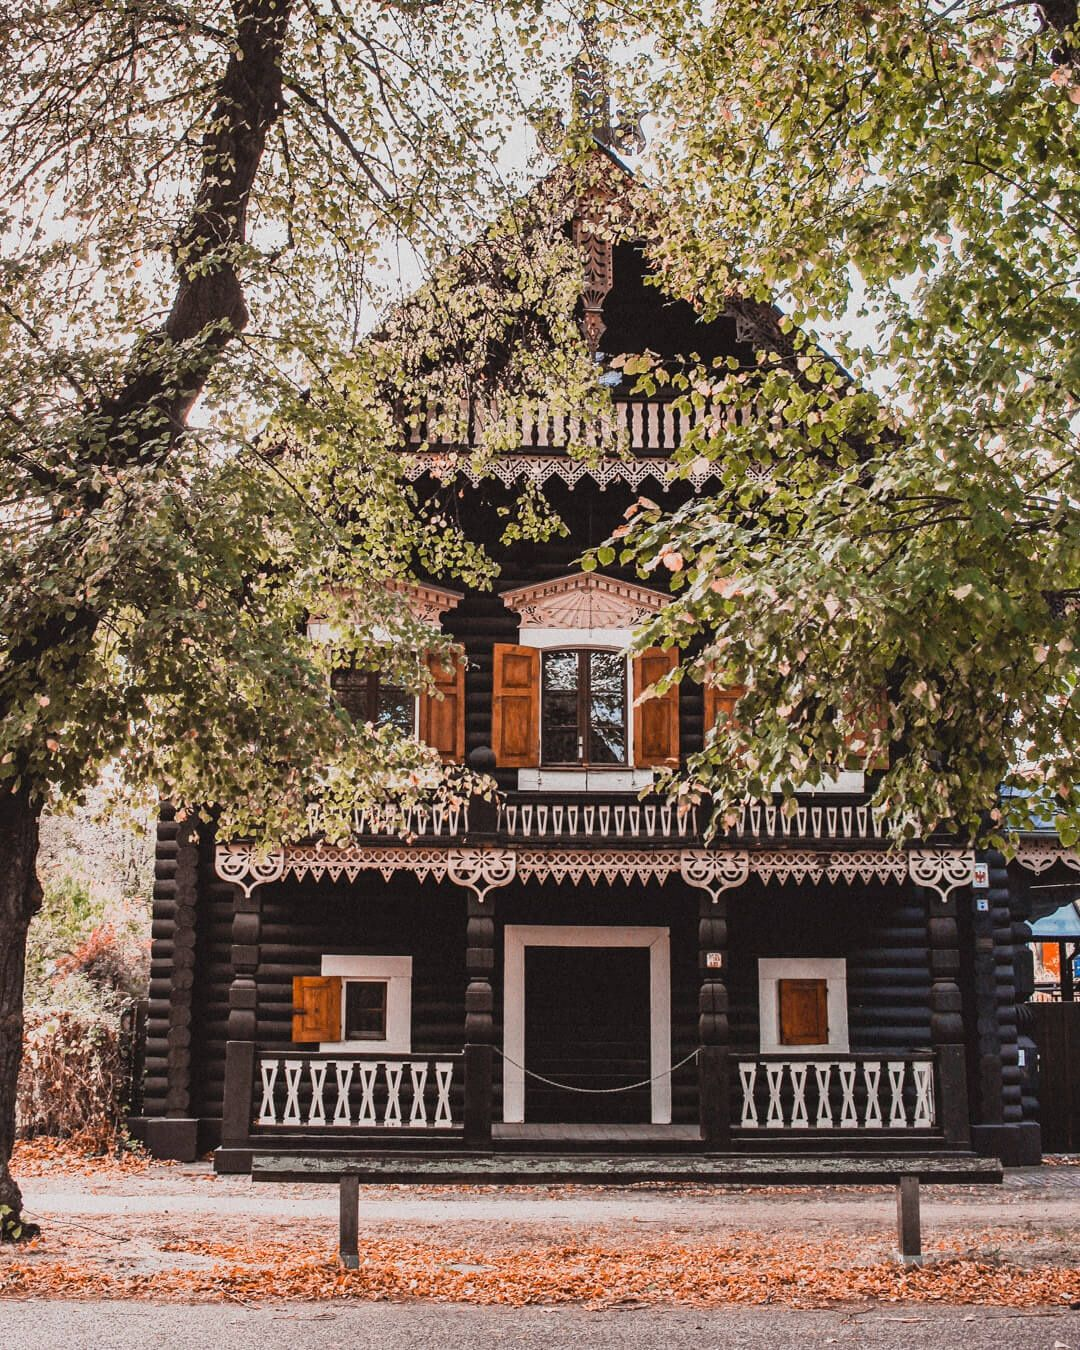 The Ultimate Guide To A Charming Day Trip To Potsdam Germany Chelsea Dinen Potsdam Reisen Fotos